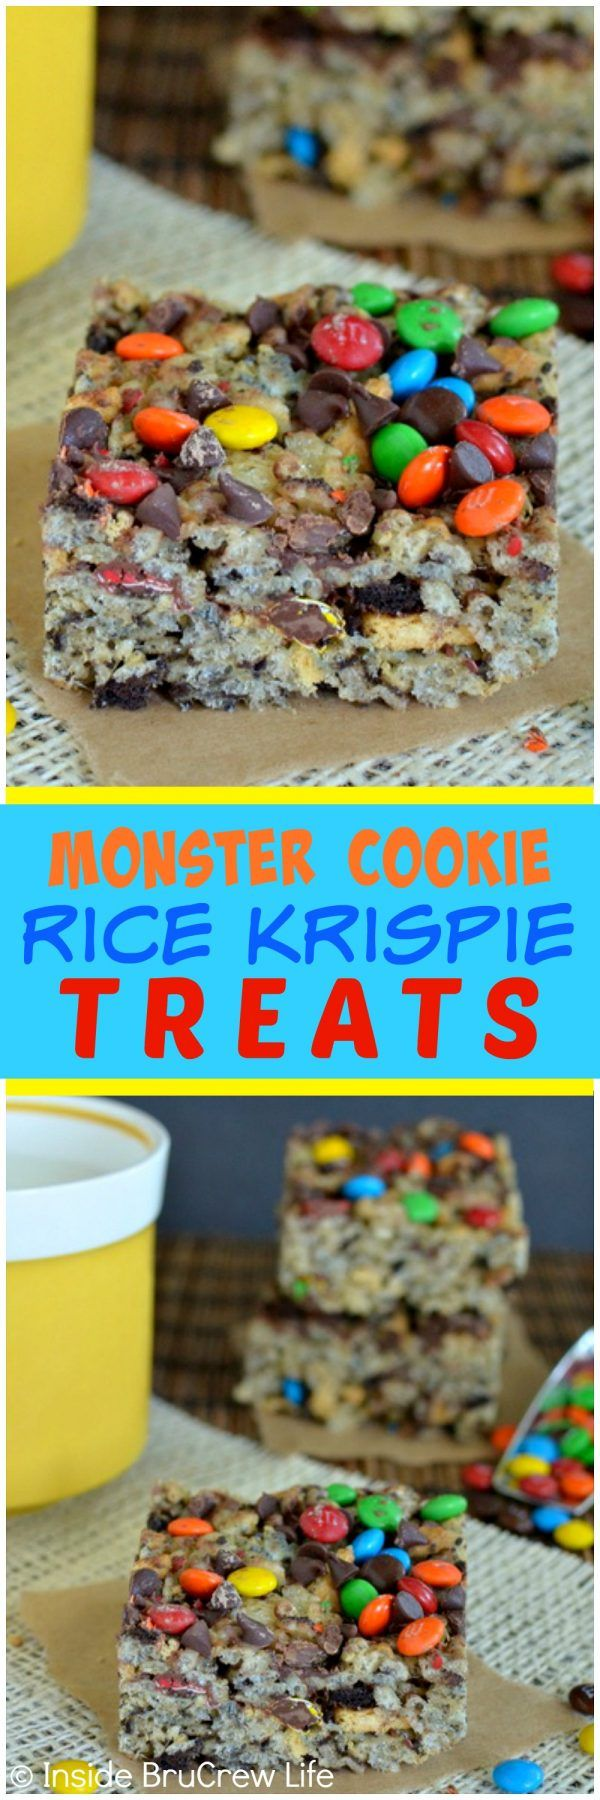 Monster Cookie Rice Krispie Treats - these easy no bake bars are loaded with two kinds of cookies and candy! Great dessert recipe to share with friends! #ricekrispiestreats